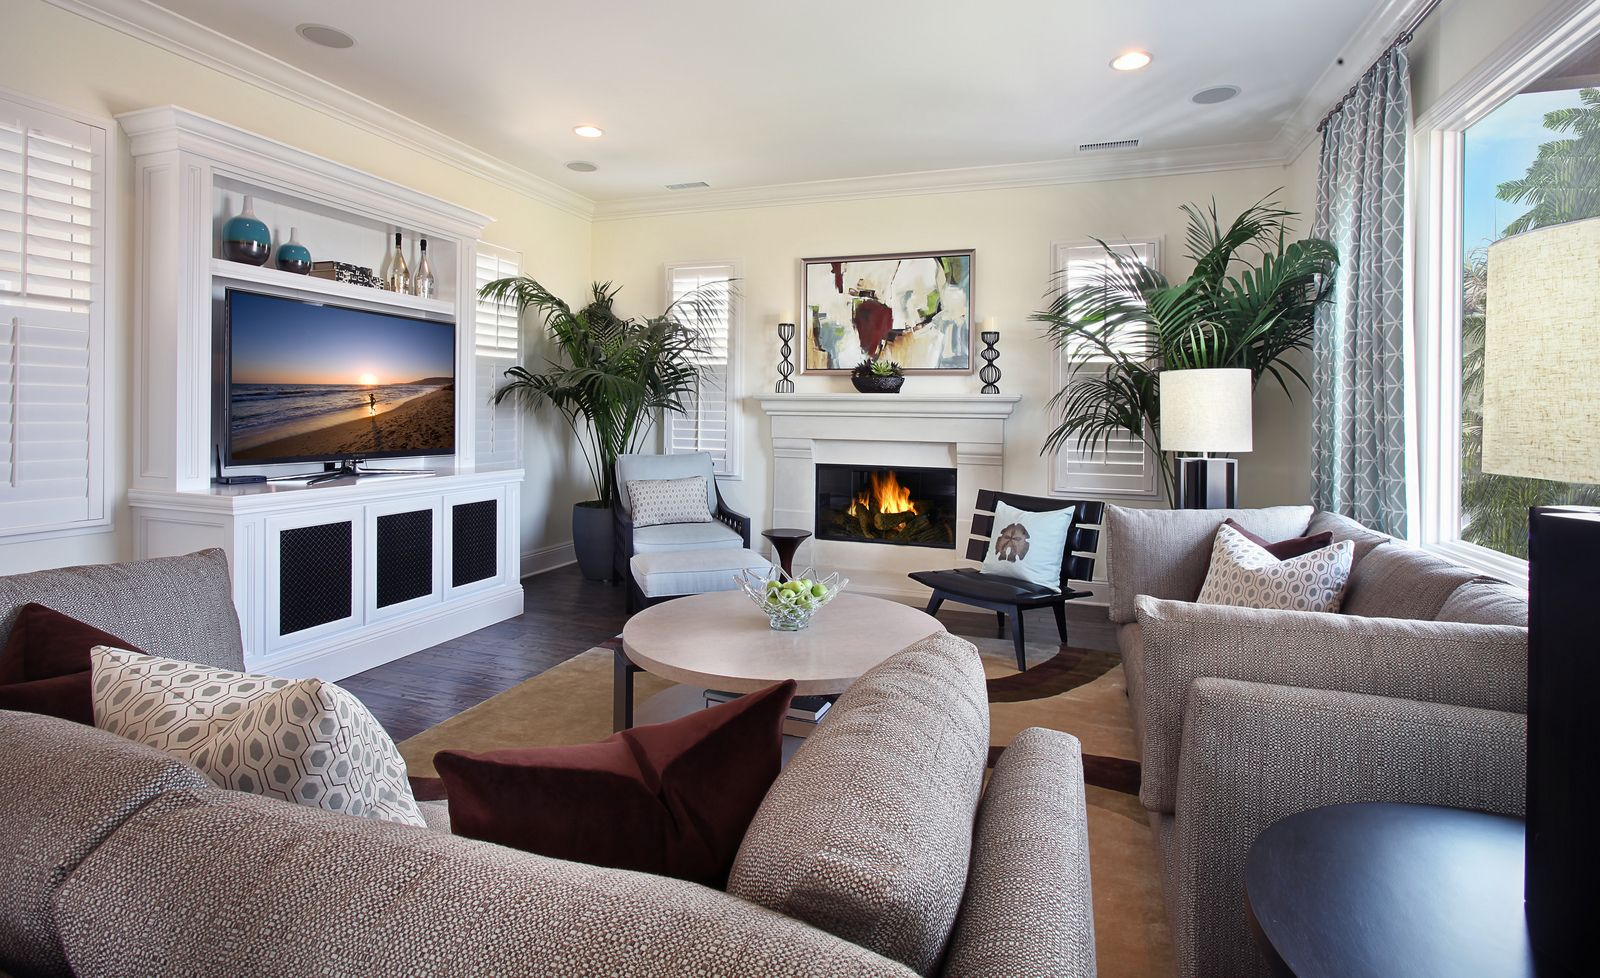 Image Result For Living Room Layout Ideas With Fireplace And Tv